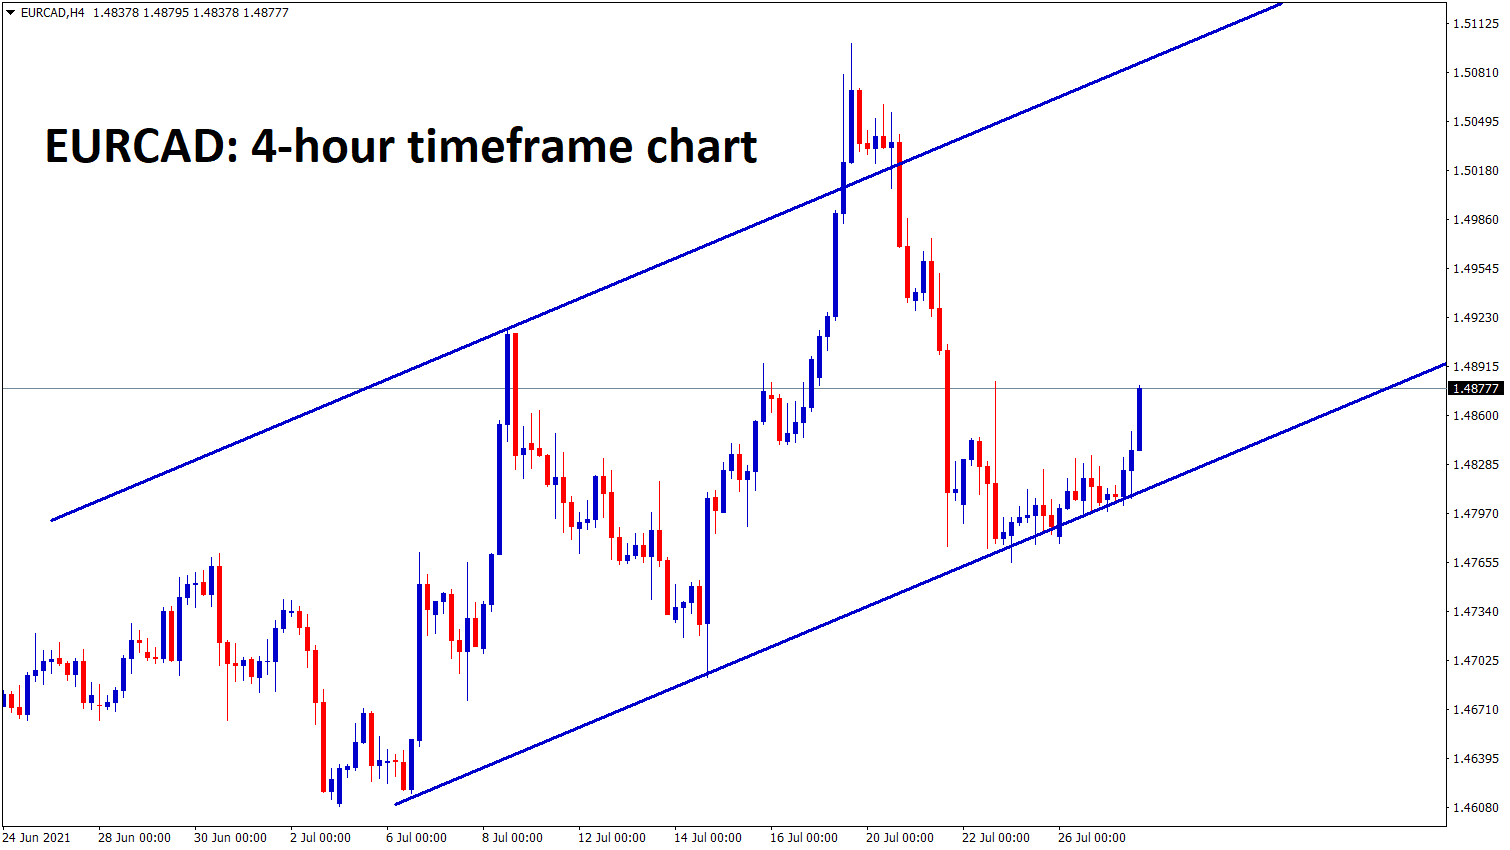 EURCAD is moving in an uptrend line in the 4hour chart